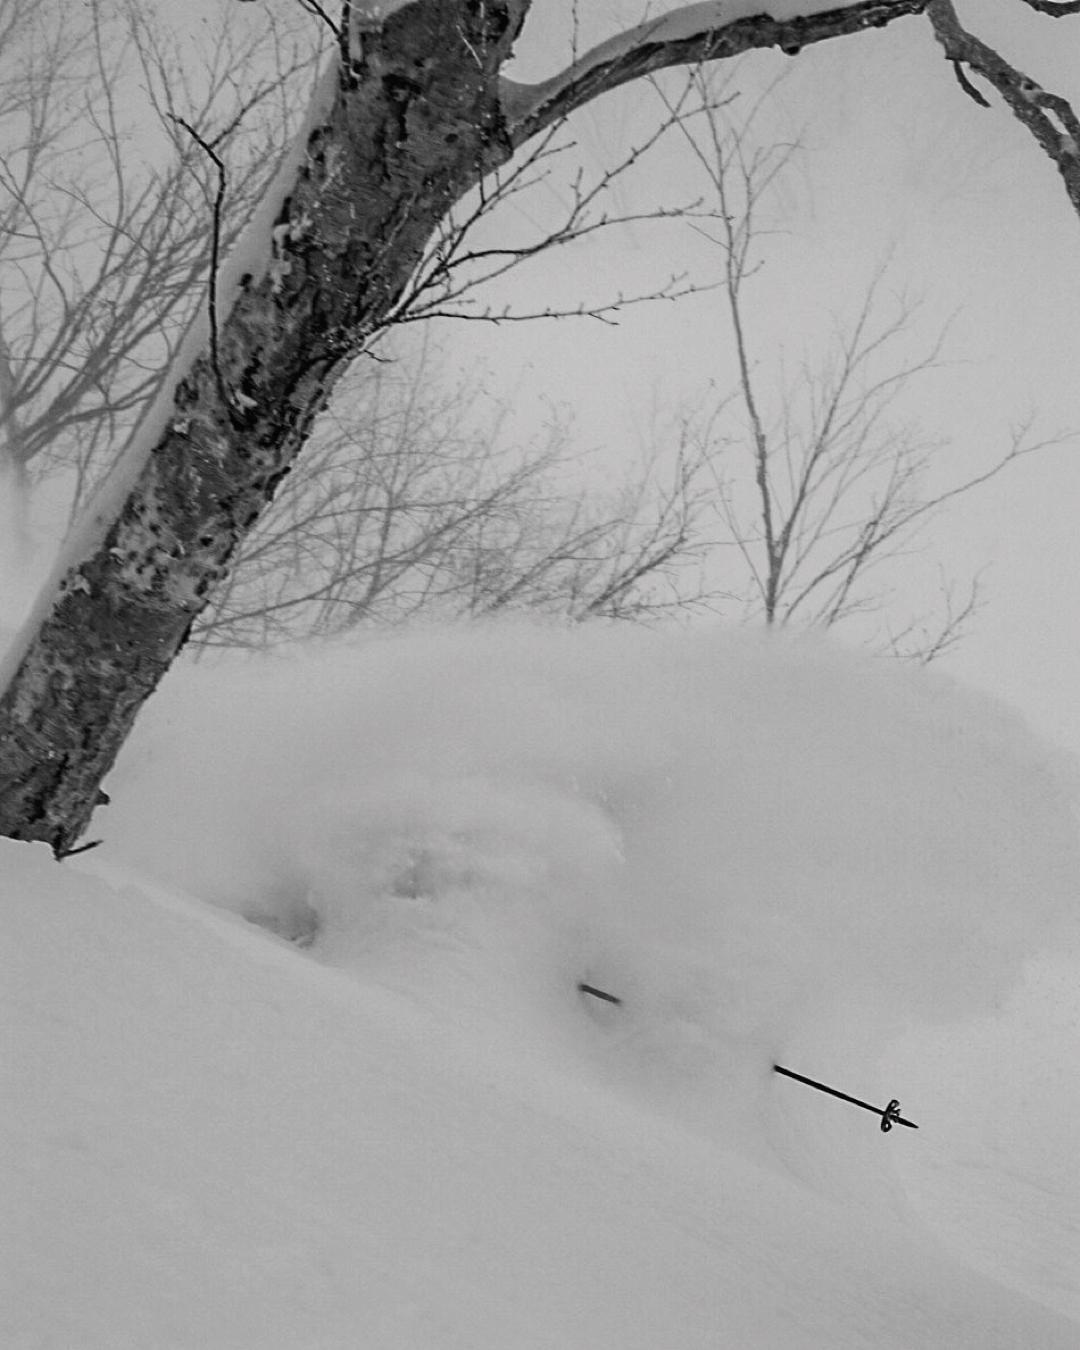 Doug Krause is in there, somewhere. #dpsskis #japow #powder #skiing